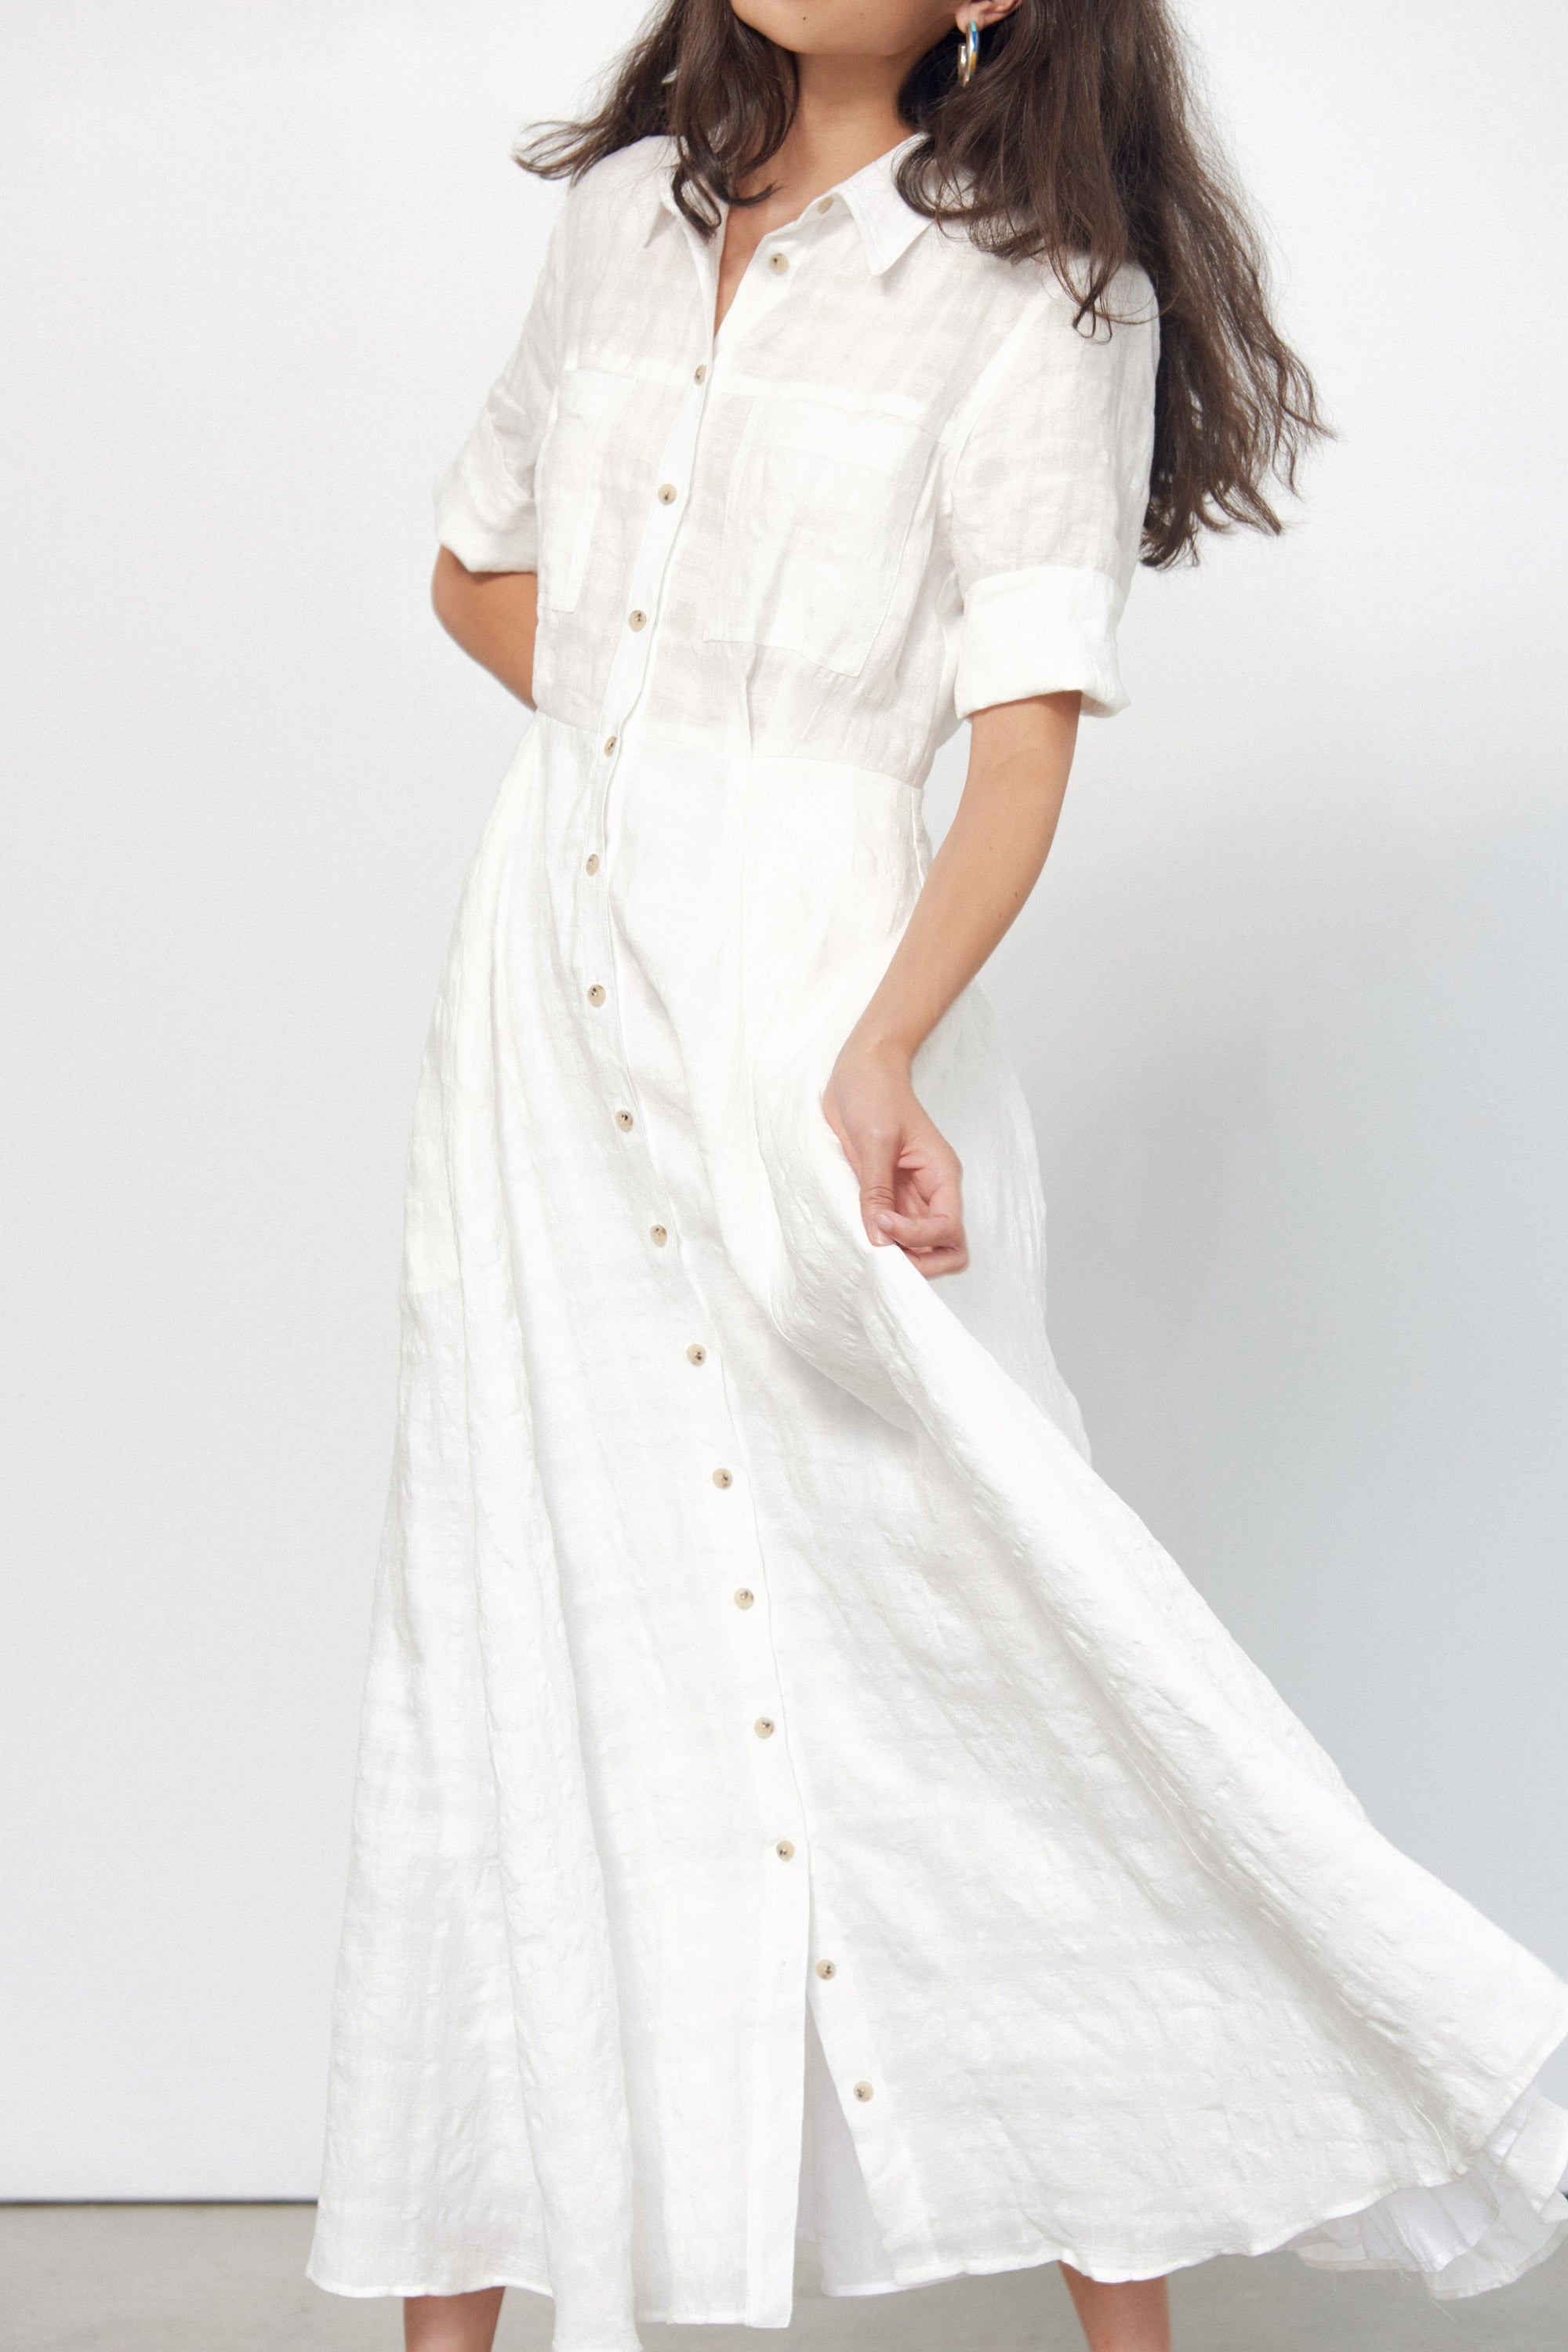 Mara Hoffman White Lorelei Dress in linen and cotton (movement)